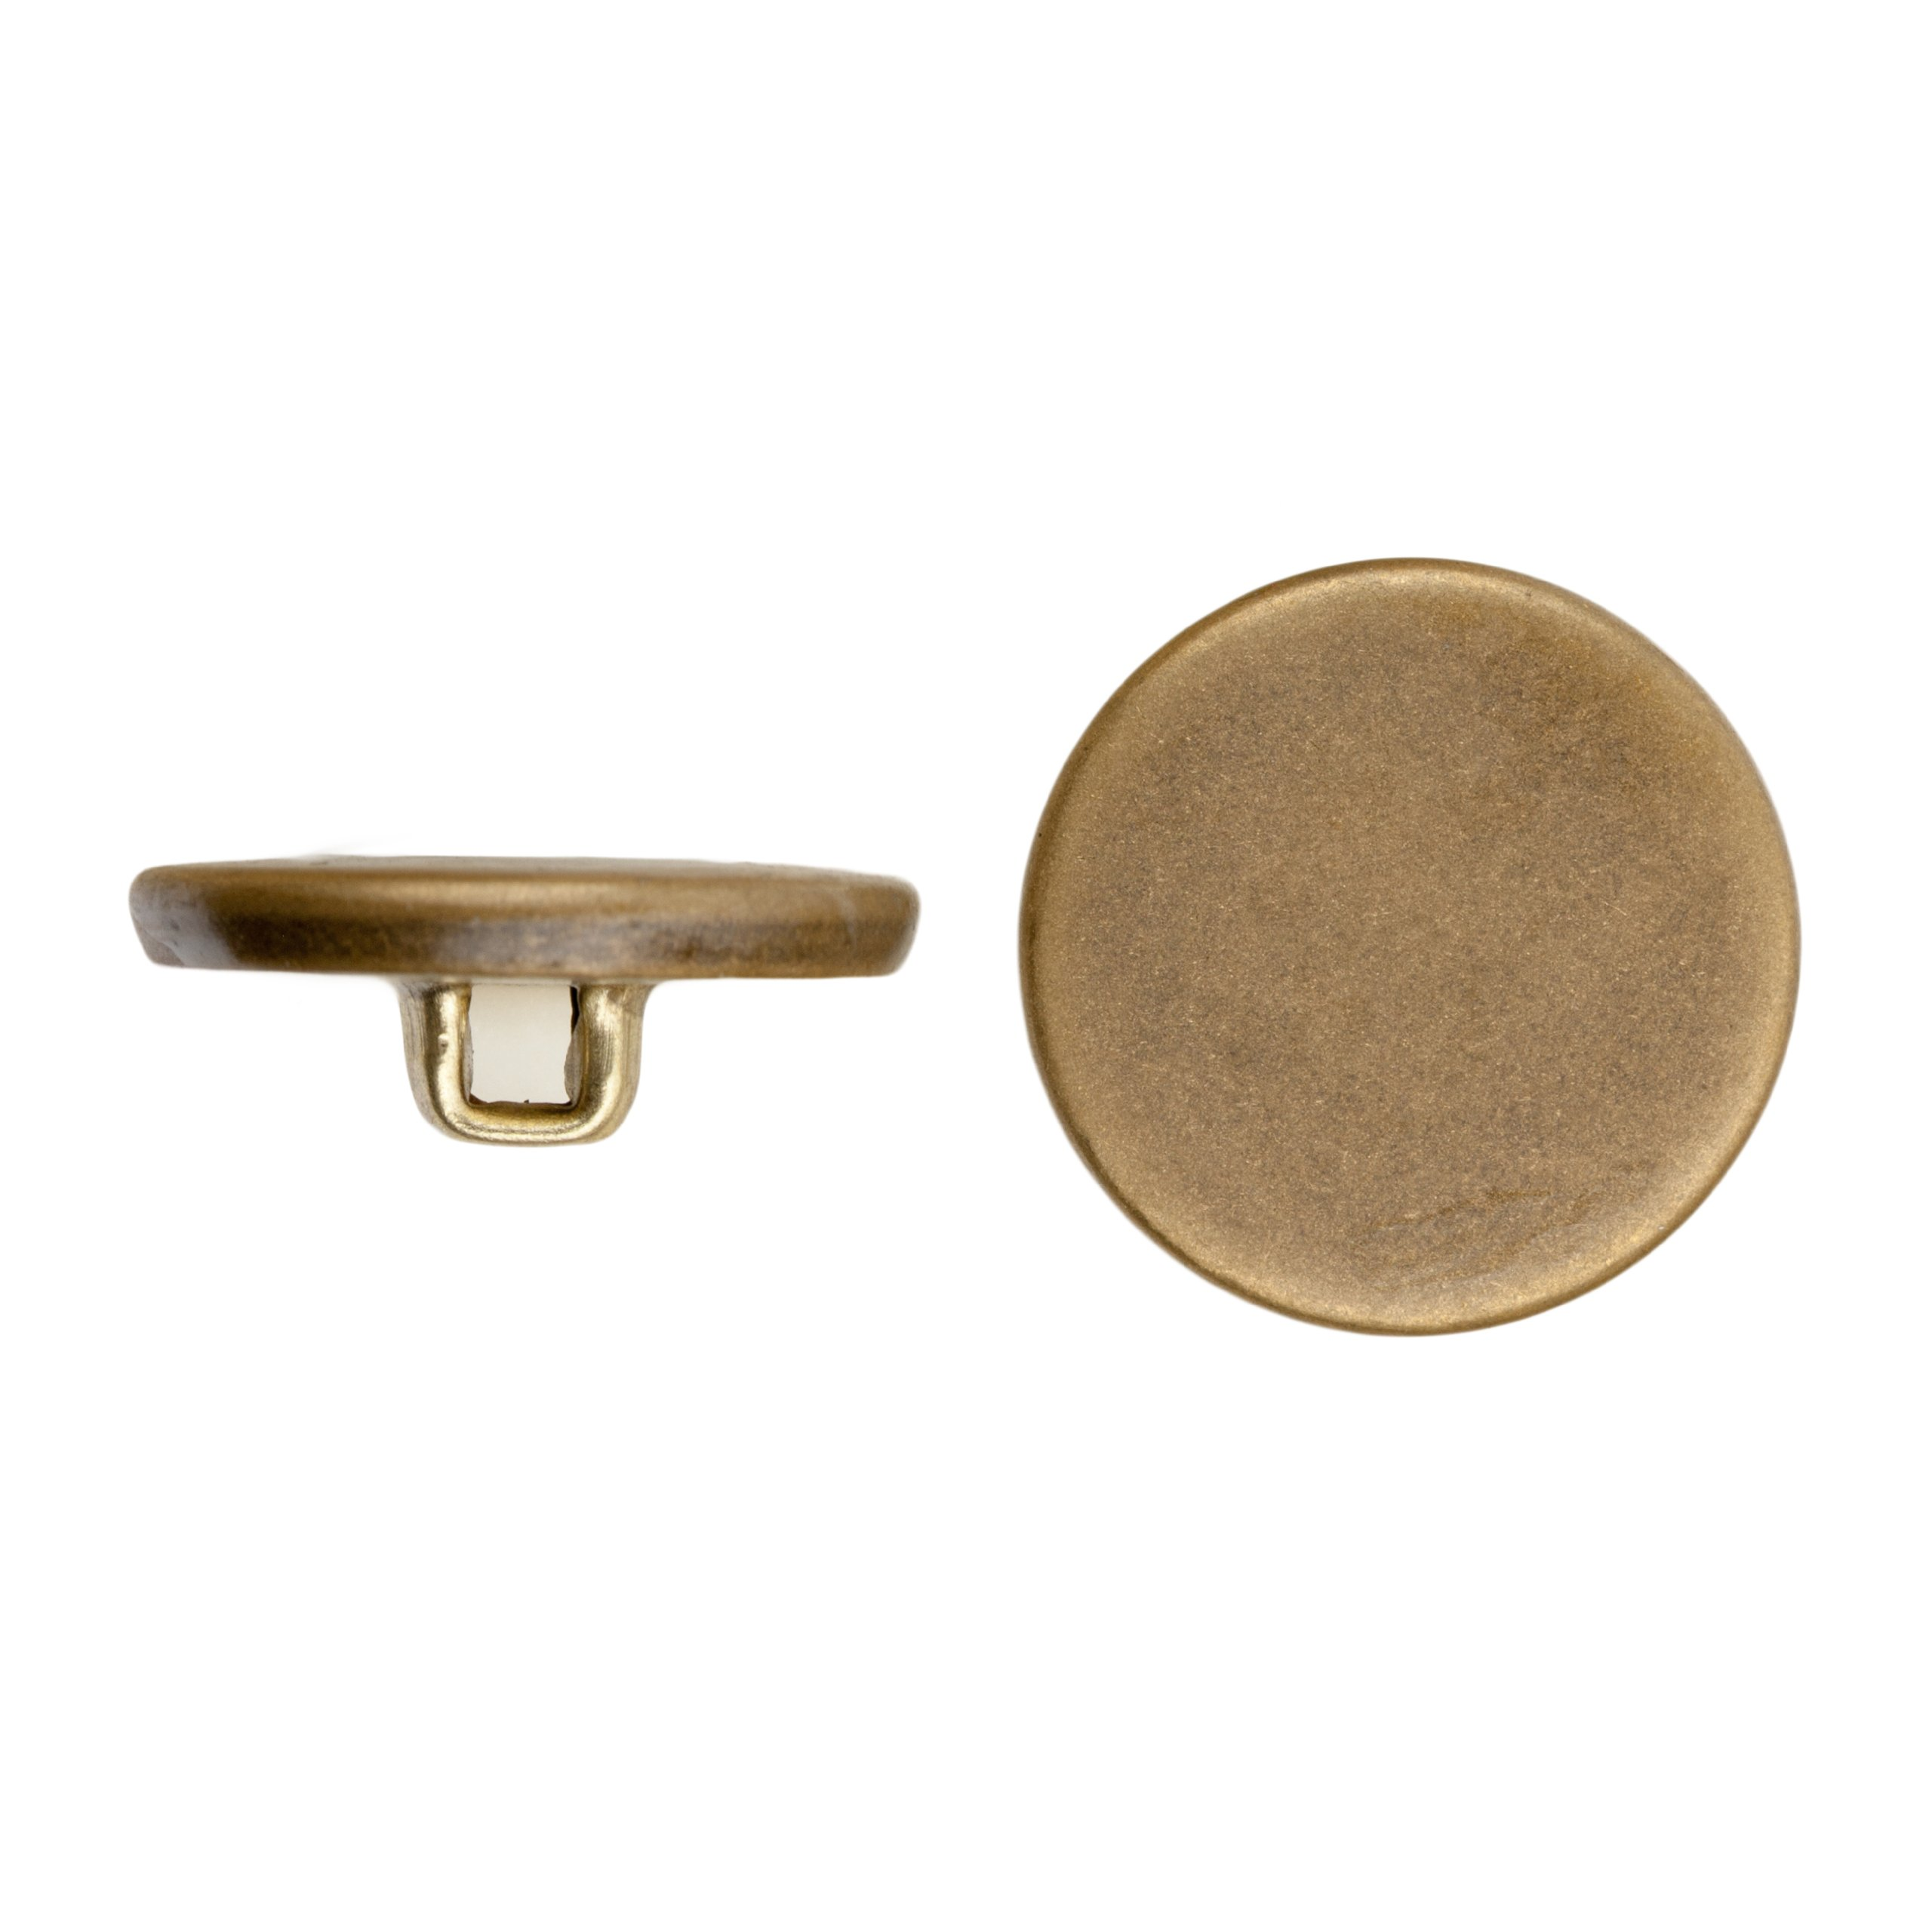 C&C Metal Products Corp 5001 Flat Metal Button, Size 36, Colonial Gold Finish, 36-Piece